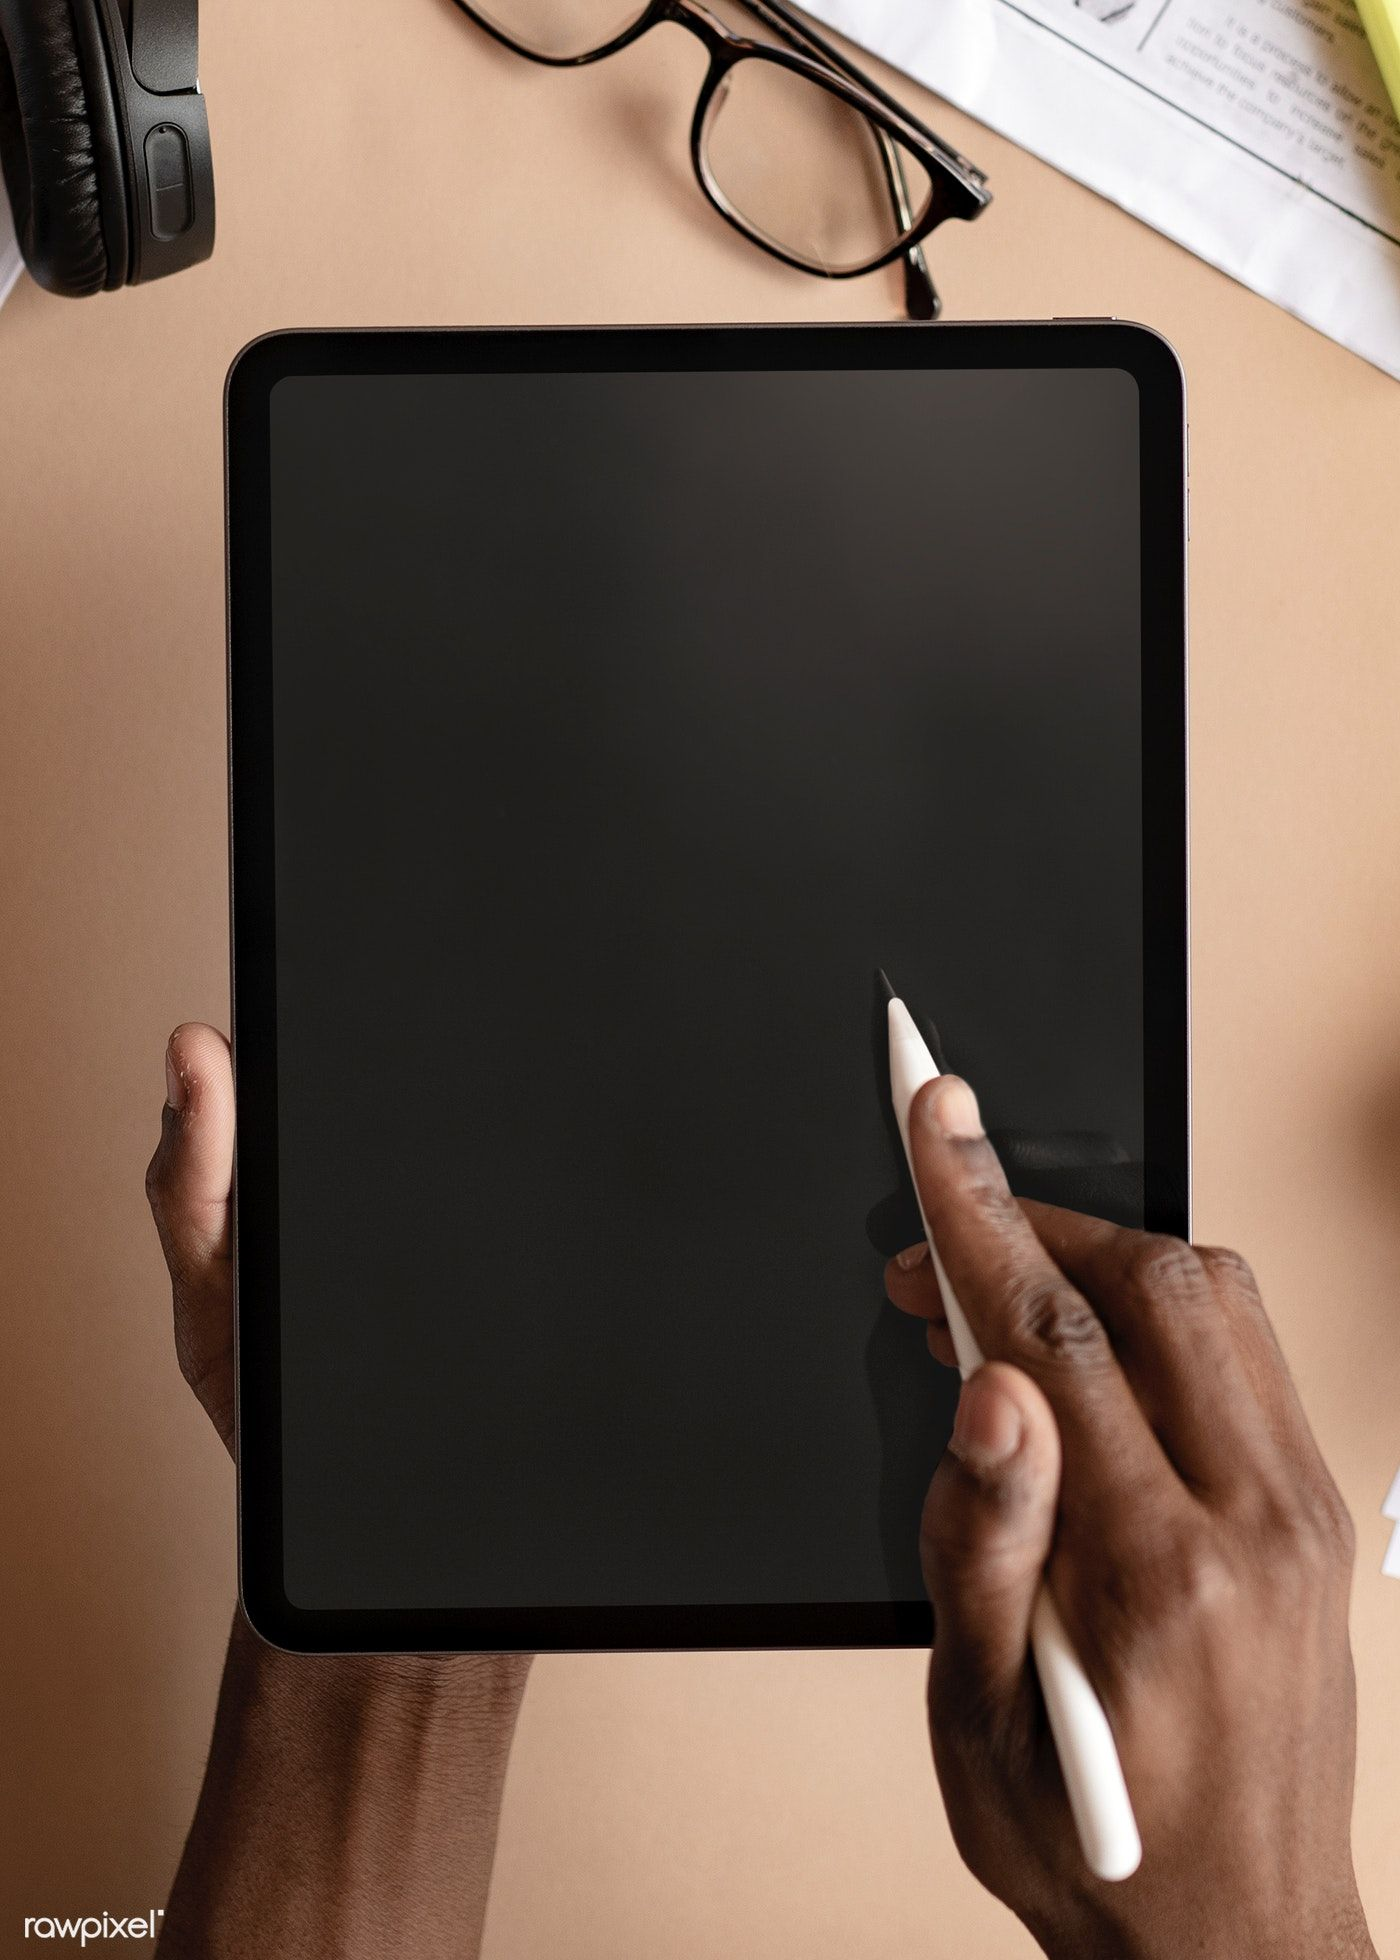 Download Premium Psd Of Black Woman Using A Digital Tablet Mockup